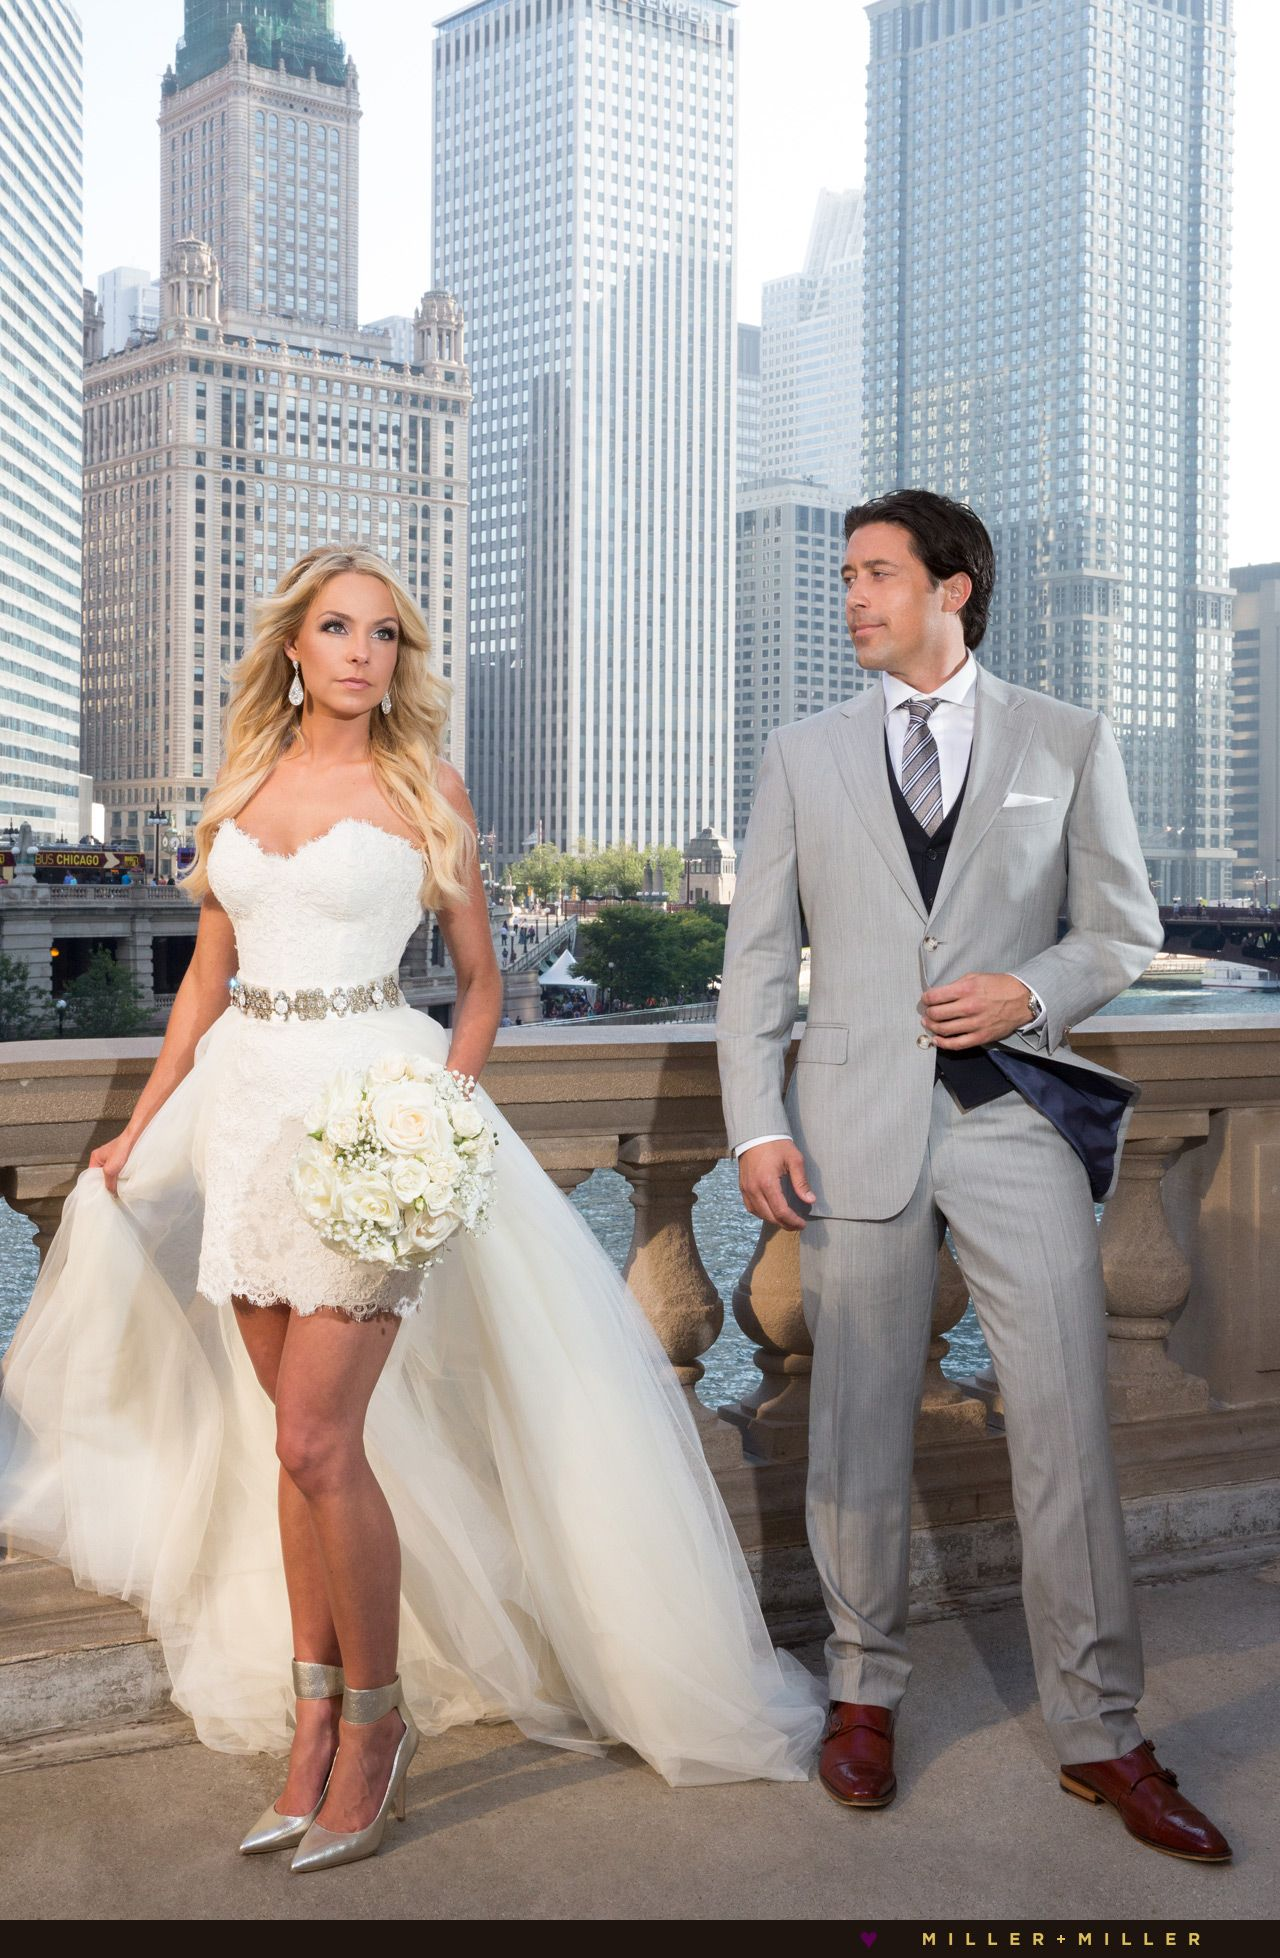 Best Chicago Wedding Photography Photographer Photos